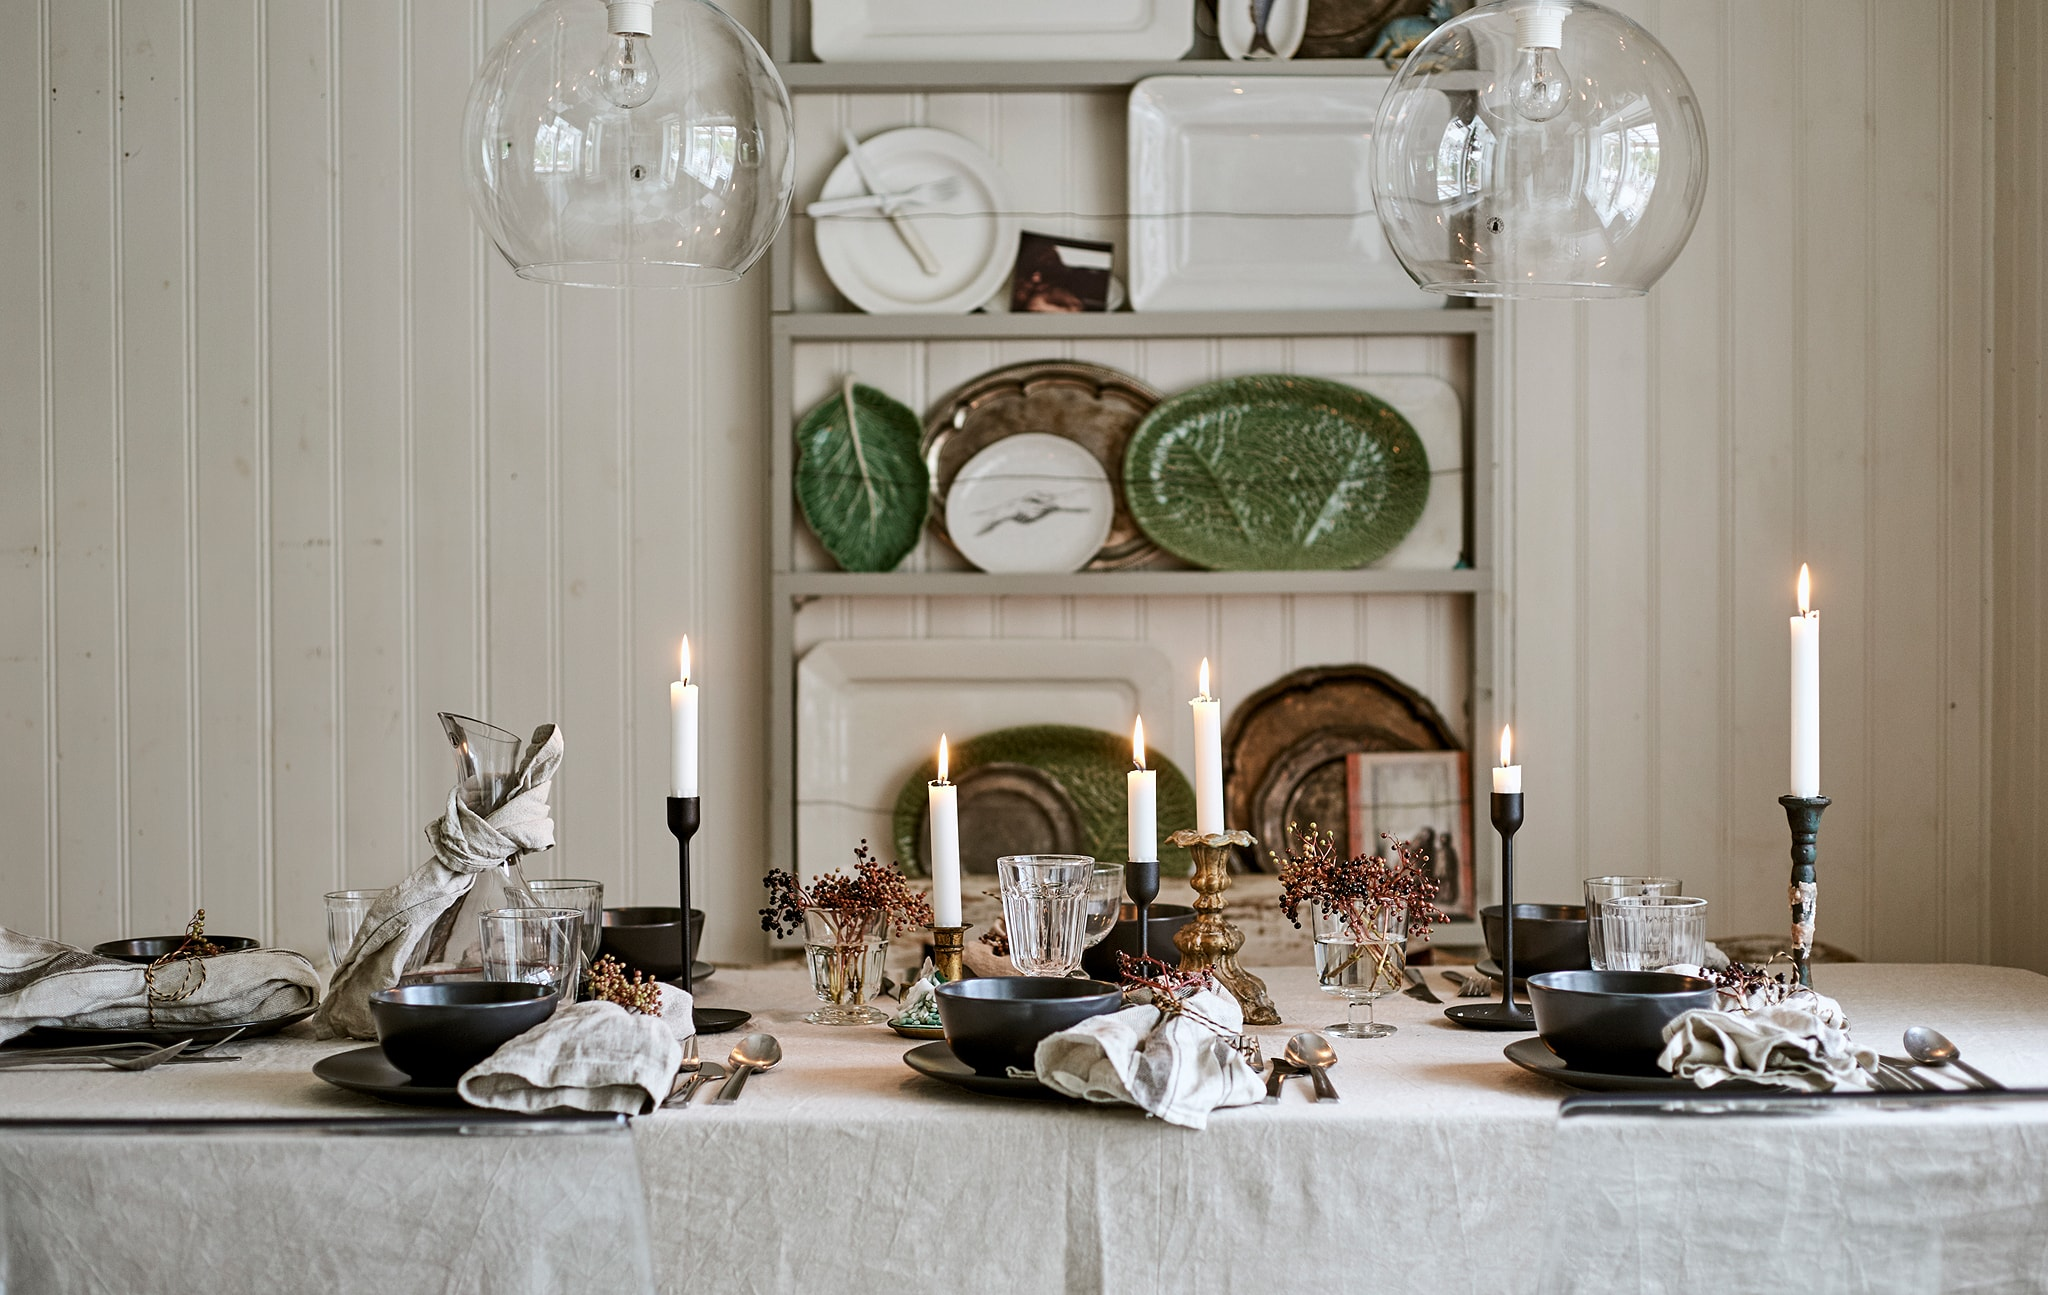 Home visit: inspiration for your festive table